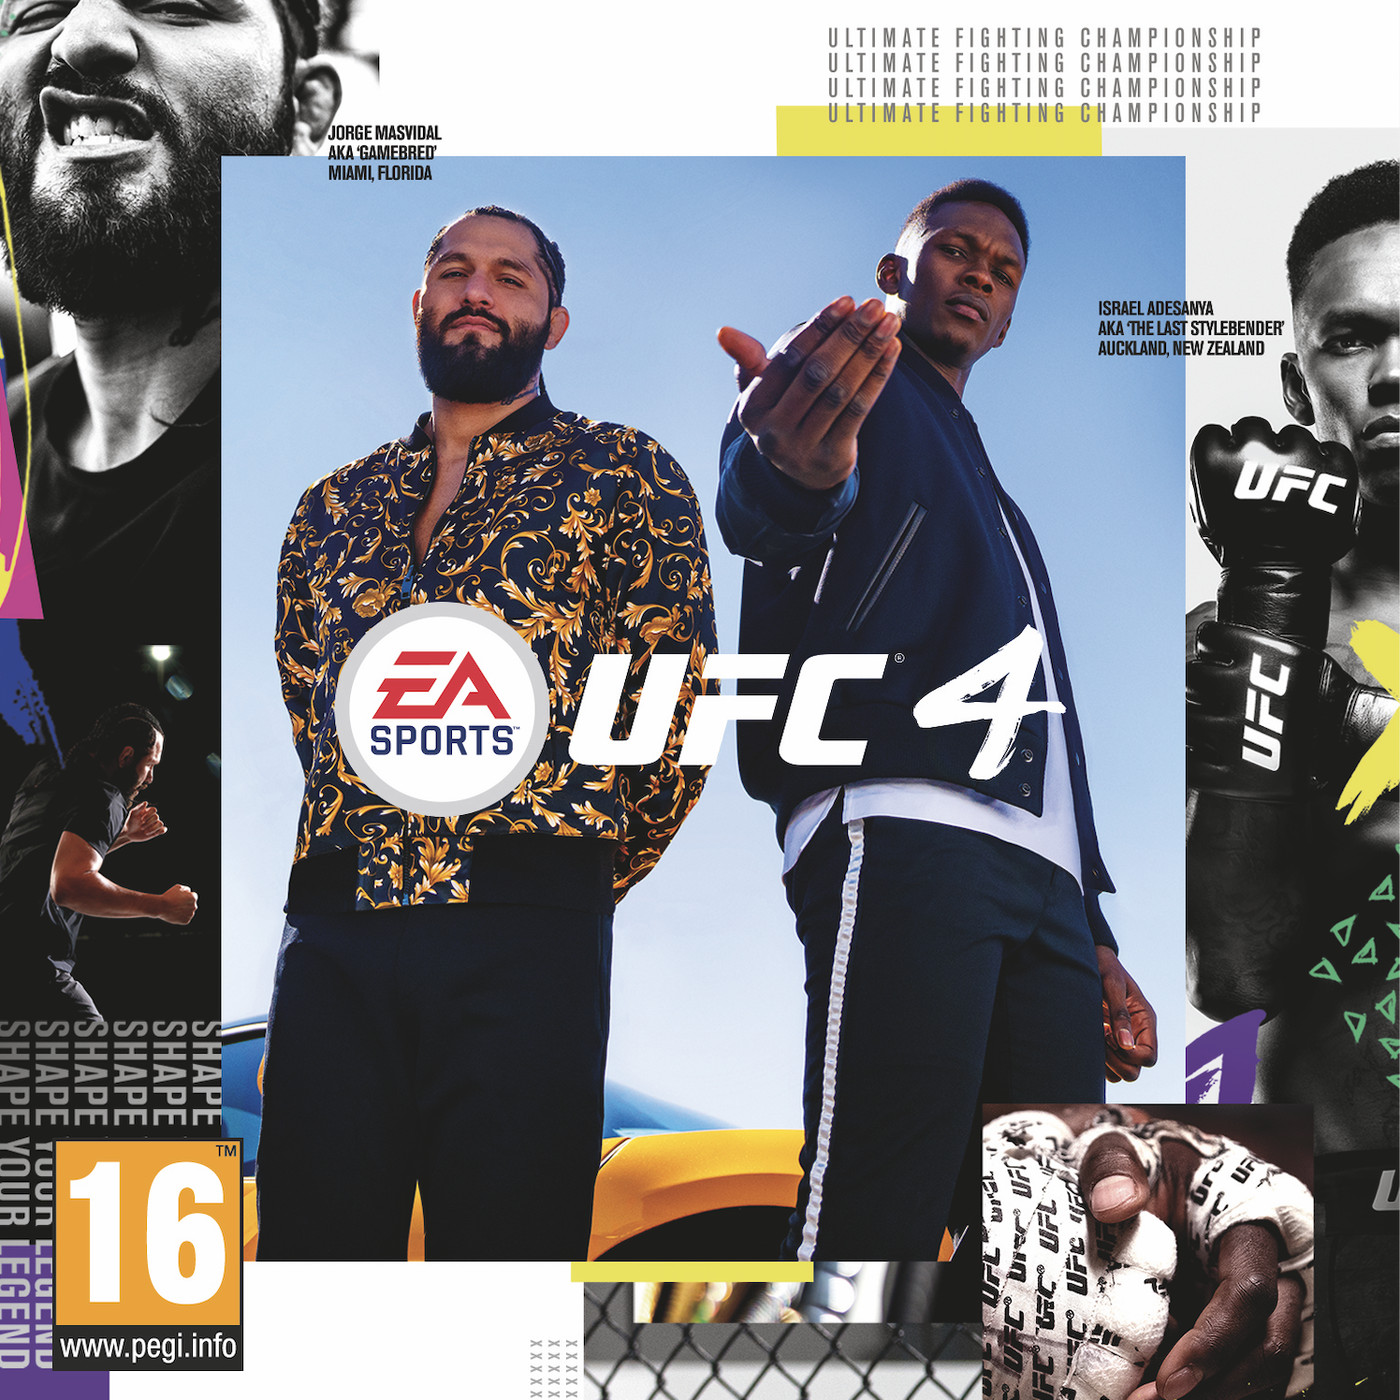 Israel and Masvidal as the covers for UFC 4